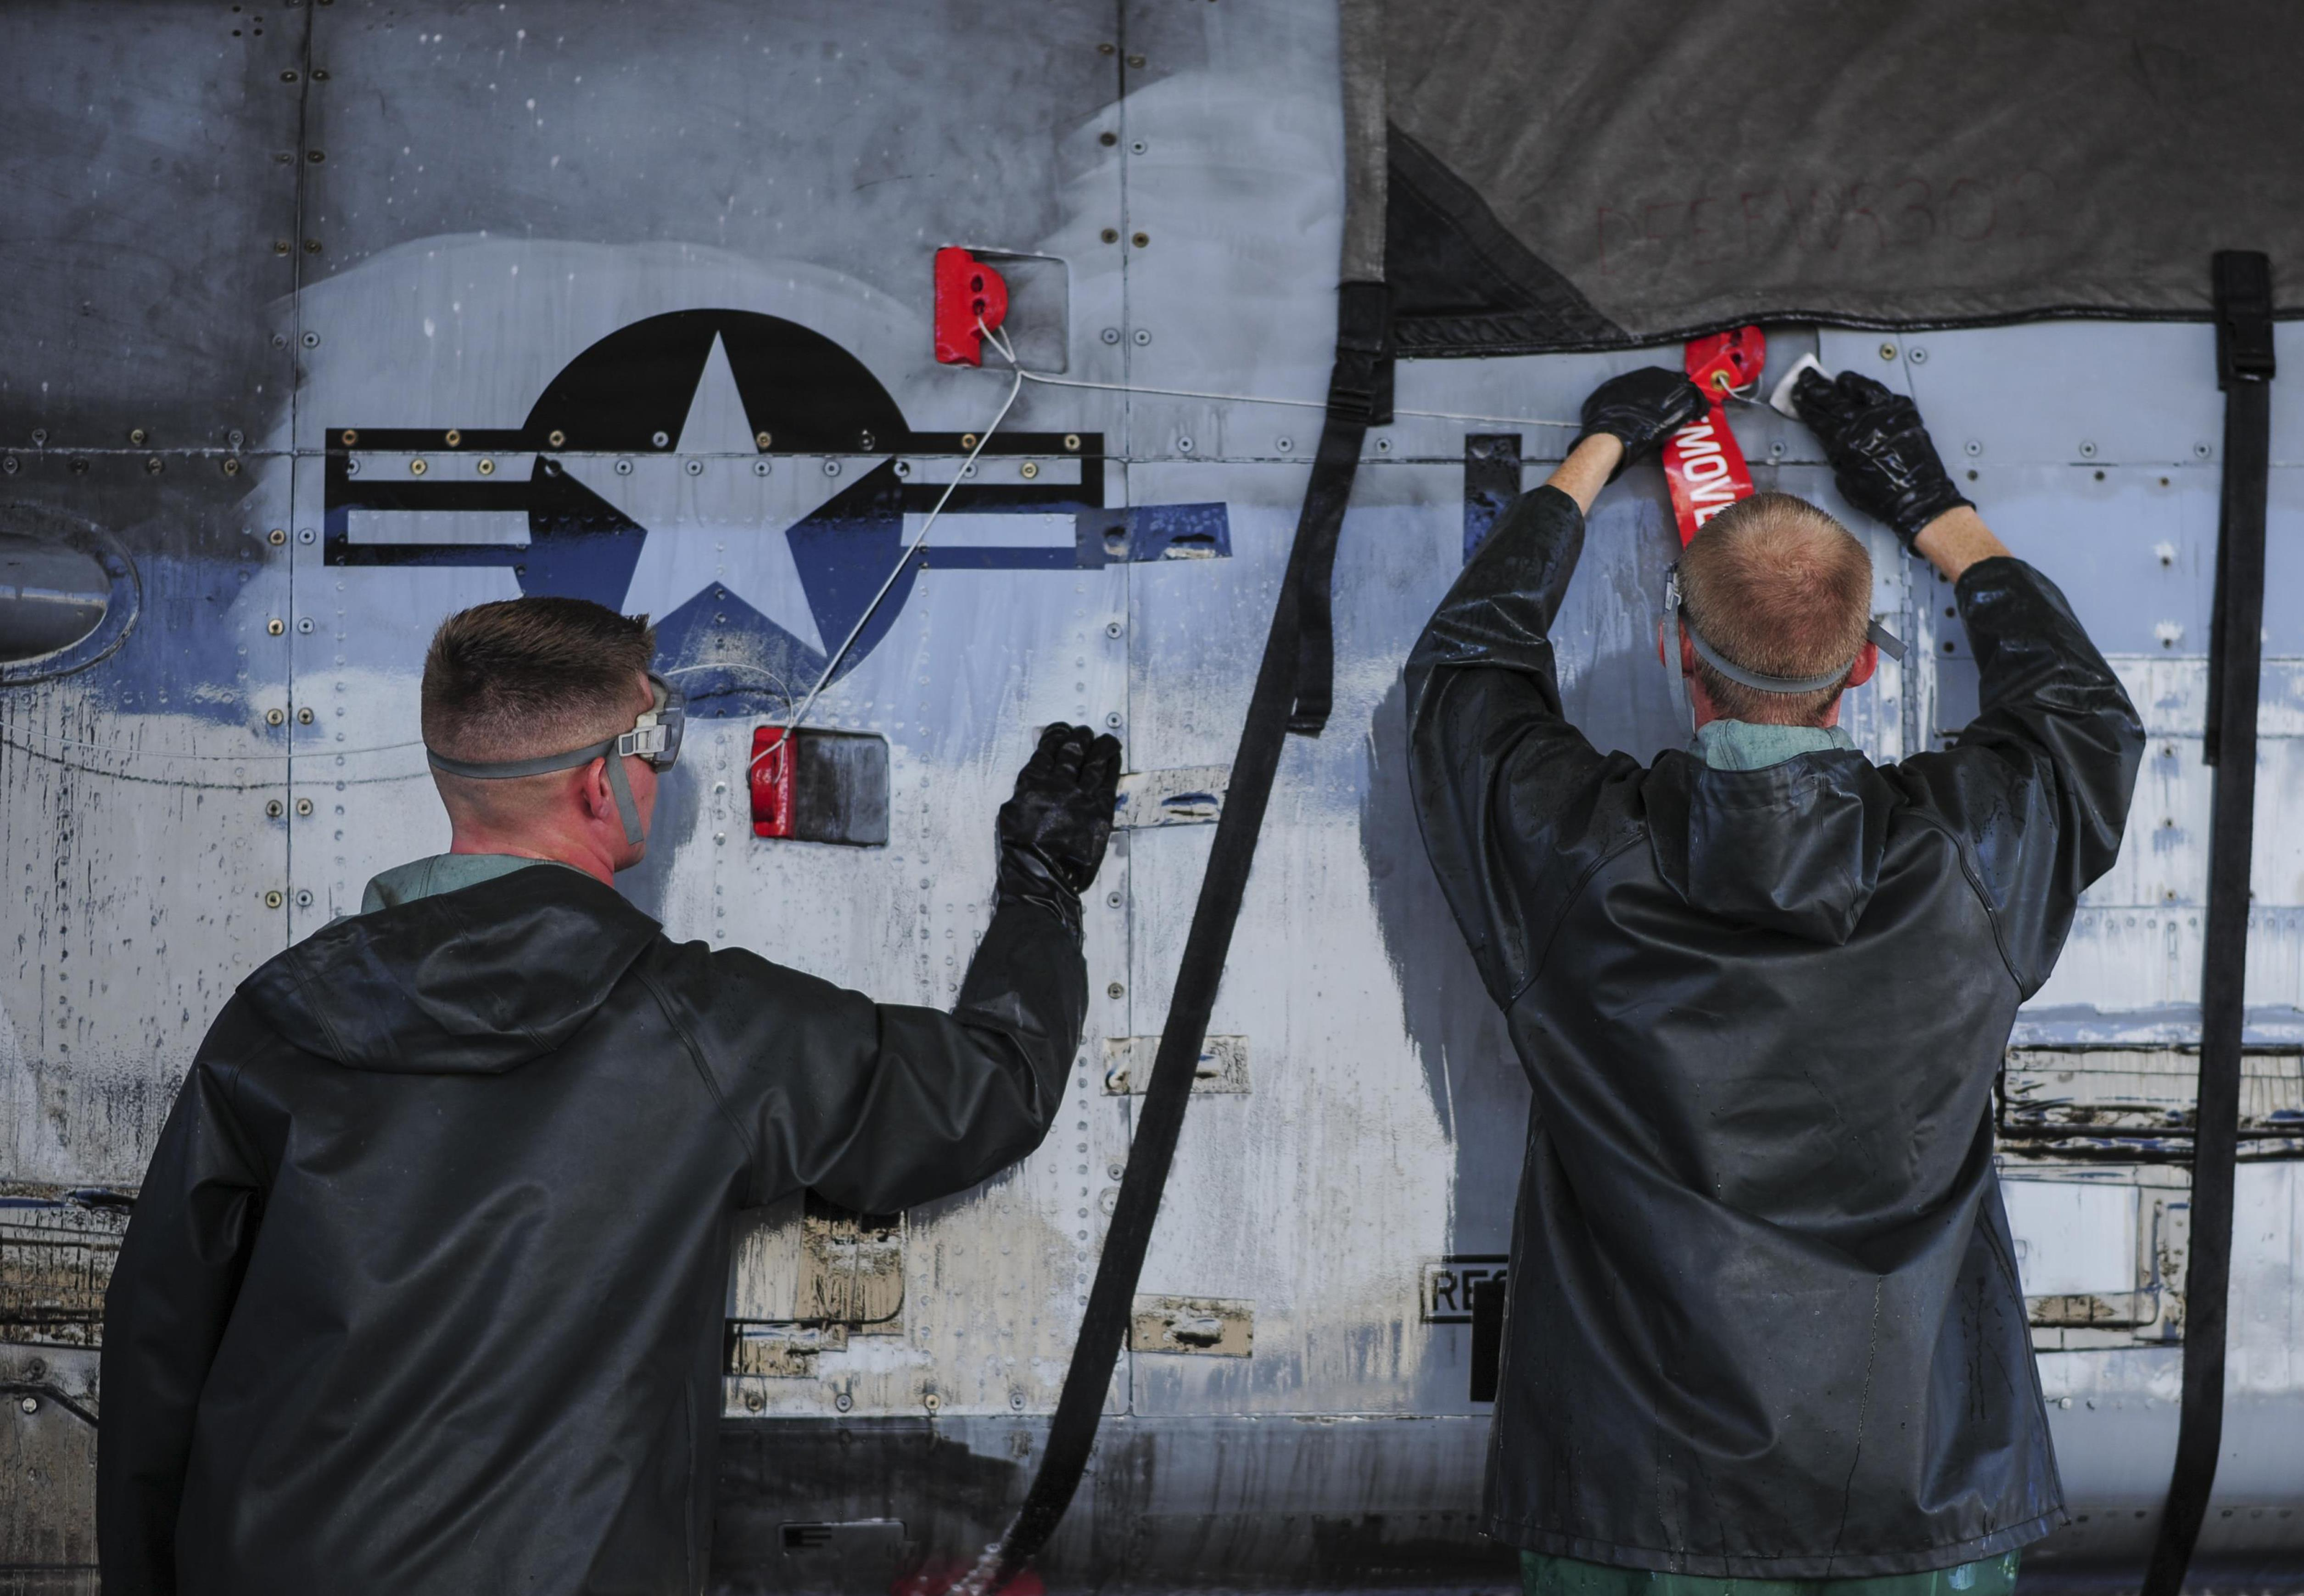 Airman 1st Class Jacob Mitchell and Senior Airman Caleb Mathre, 354th Aircraft Maintenance Unit crew chiefs, clean an A-10C Thunderbolt II at Davis-Monthan Air Force Base, Ariz., July 25, 2017. The detailed cleaning process can take crew chiefs nearly four hours to complete. (U.S. Air Force photo/Airman 1st Class Michael X. Beyer)